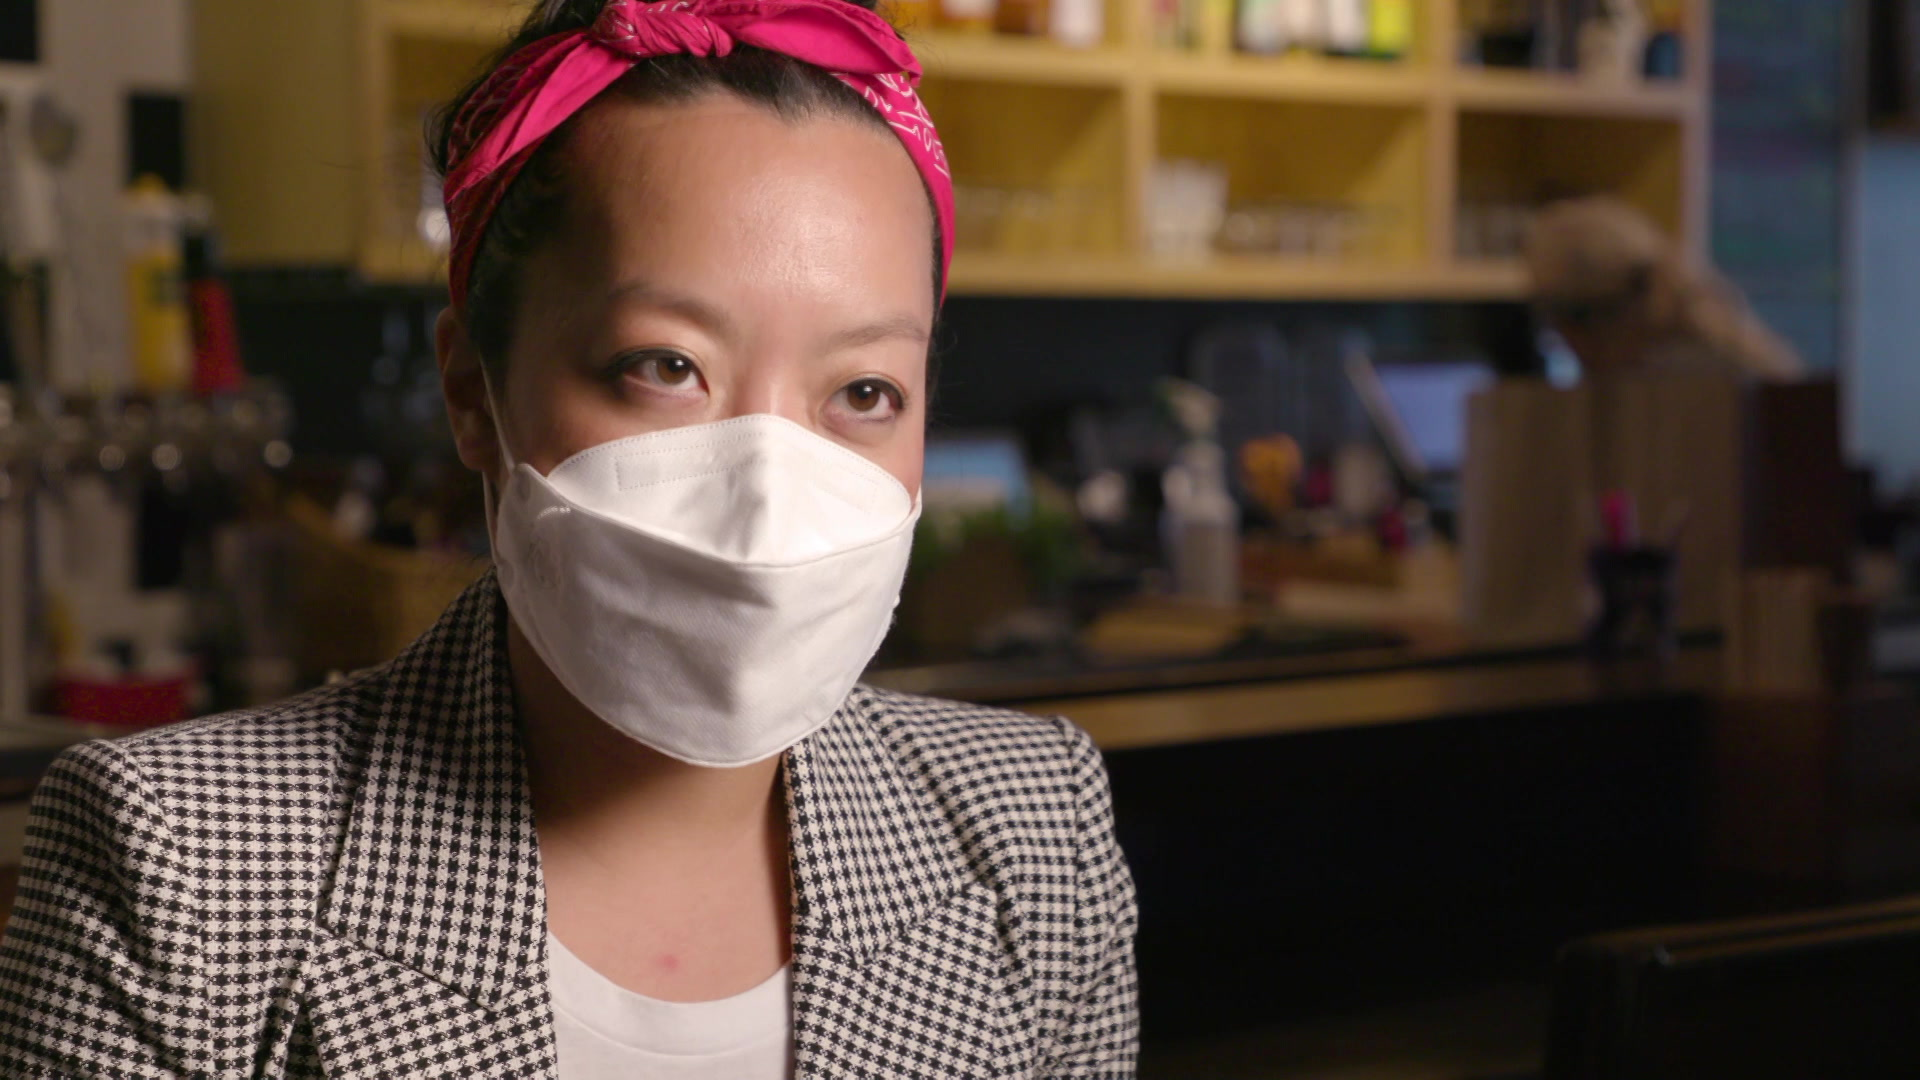 A portrait of Francesca Hong, wearing a suit and face mask with beer taps and cabinets in the background.